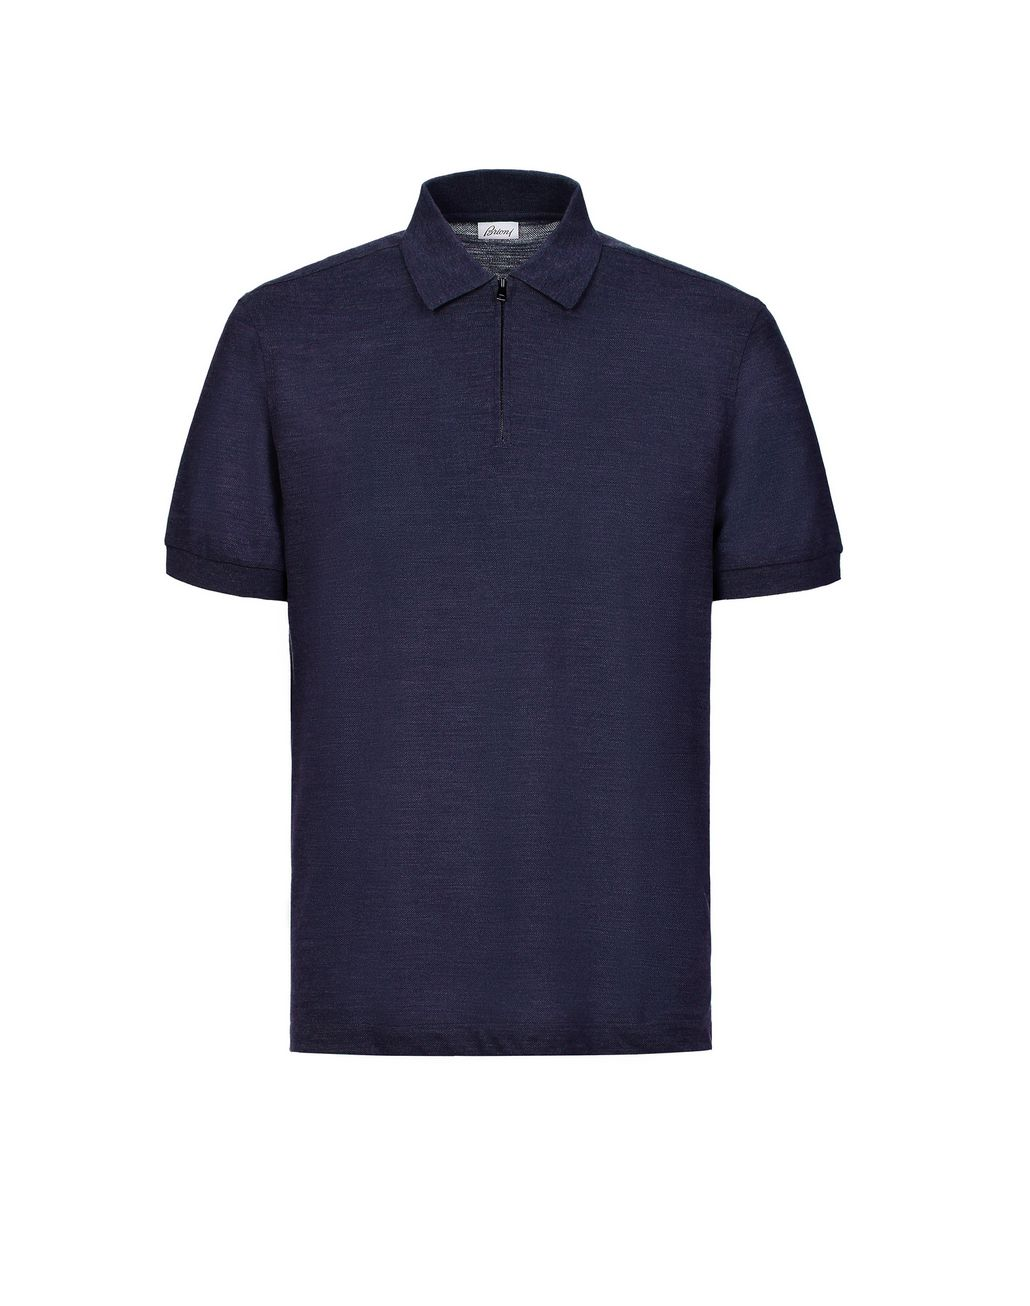 BRIONI Navy Blue Zipped Polo Shirt T-Shirts & Polos Man f